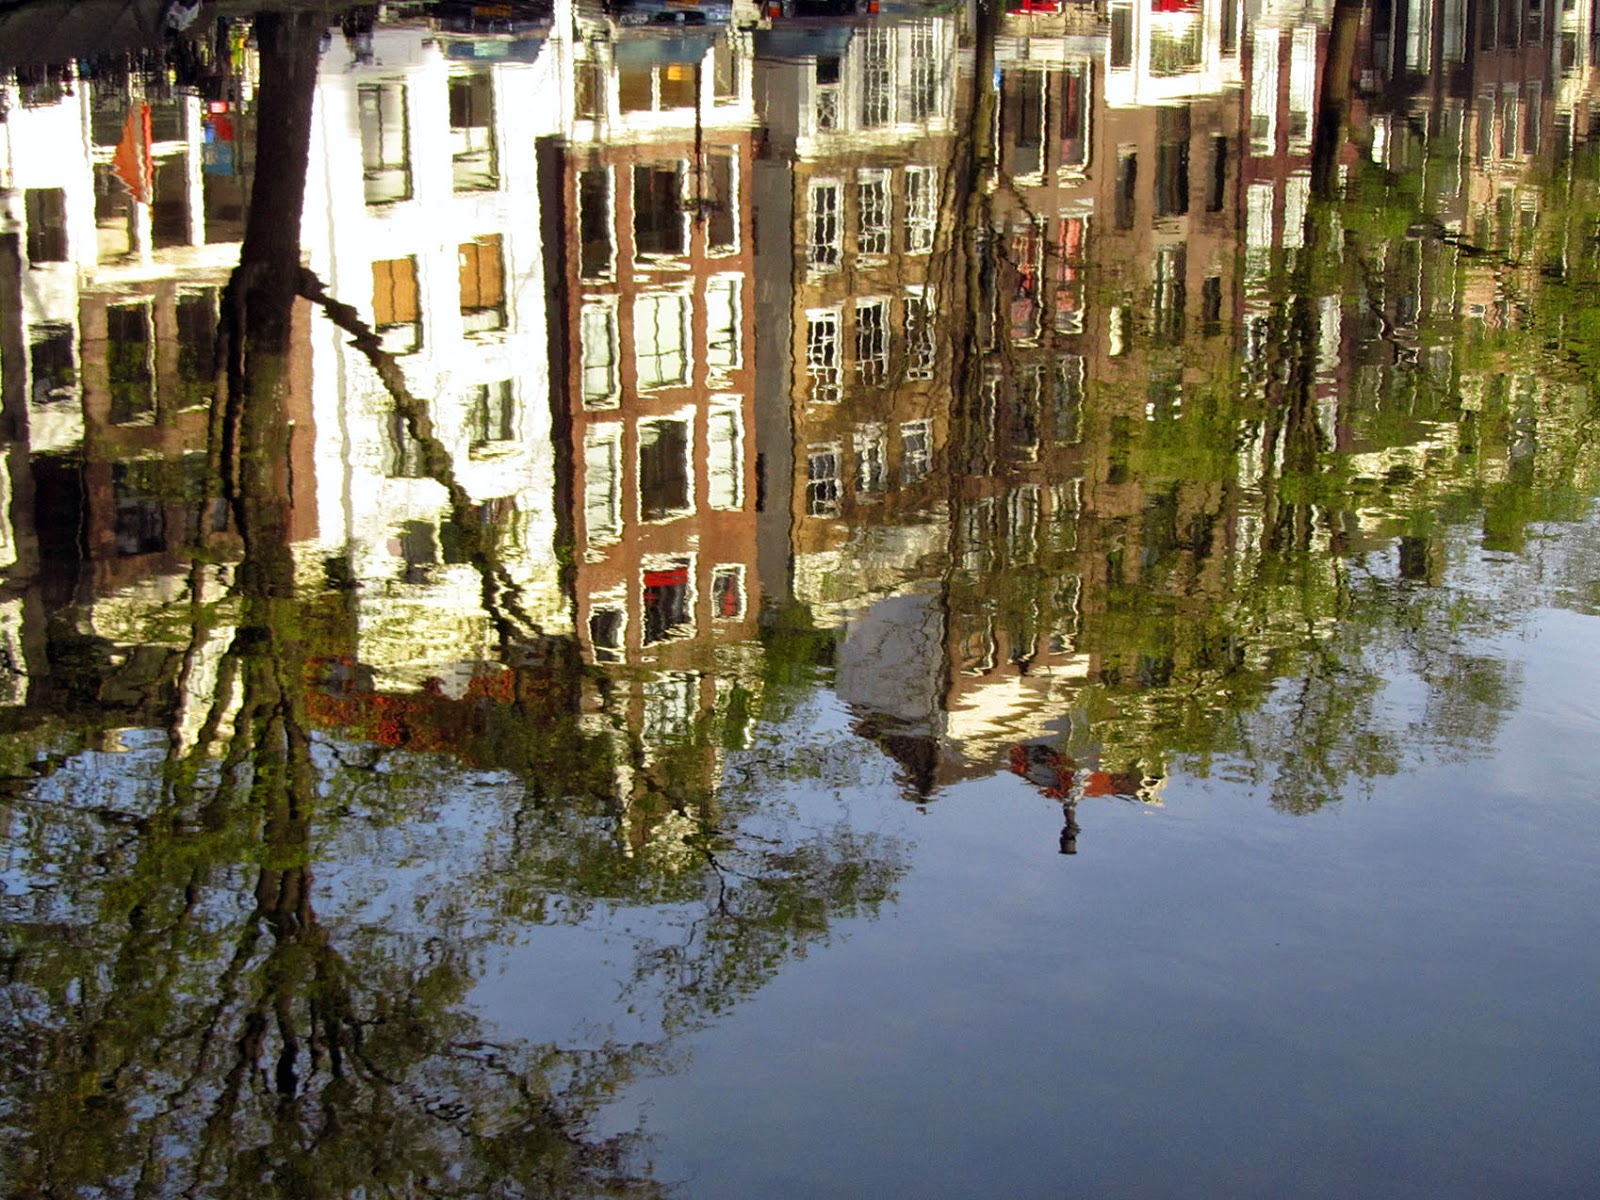 reflection of Amsterdam canal houses